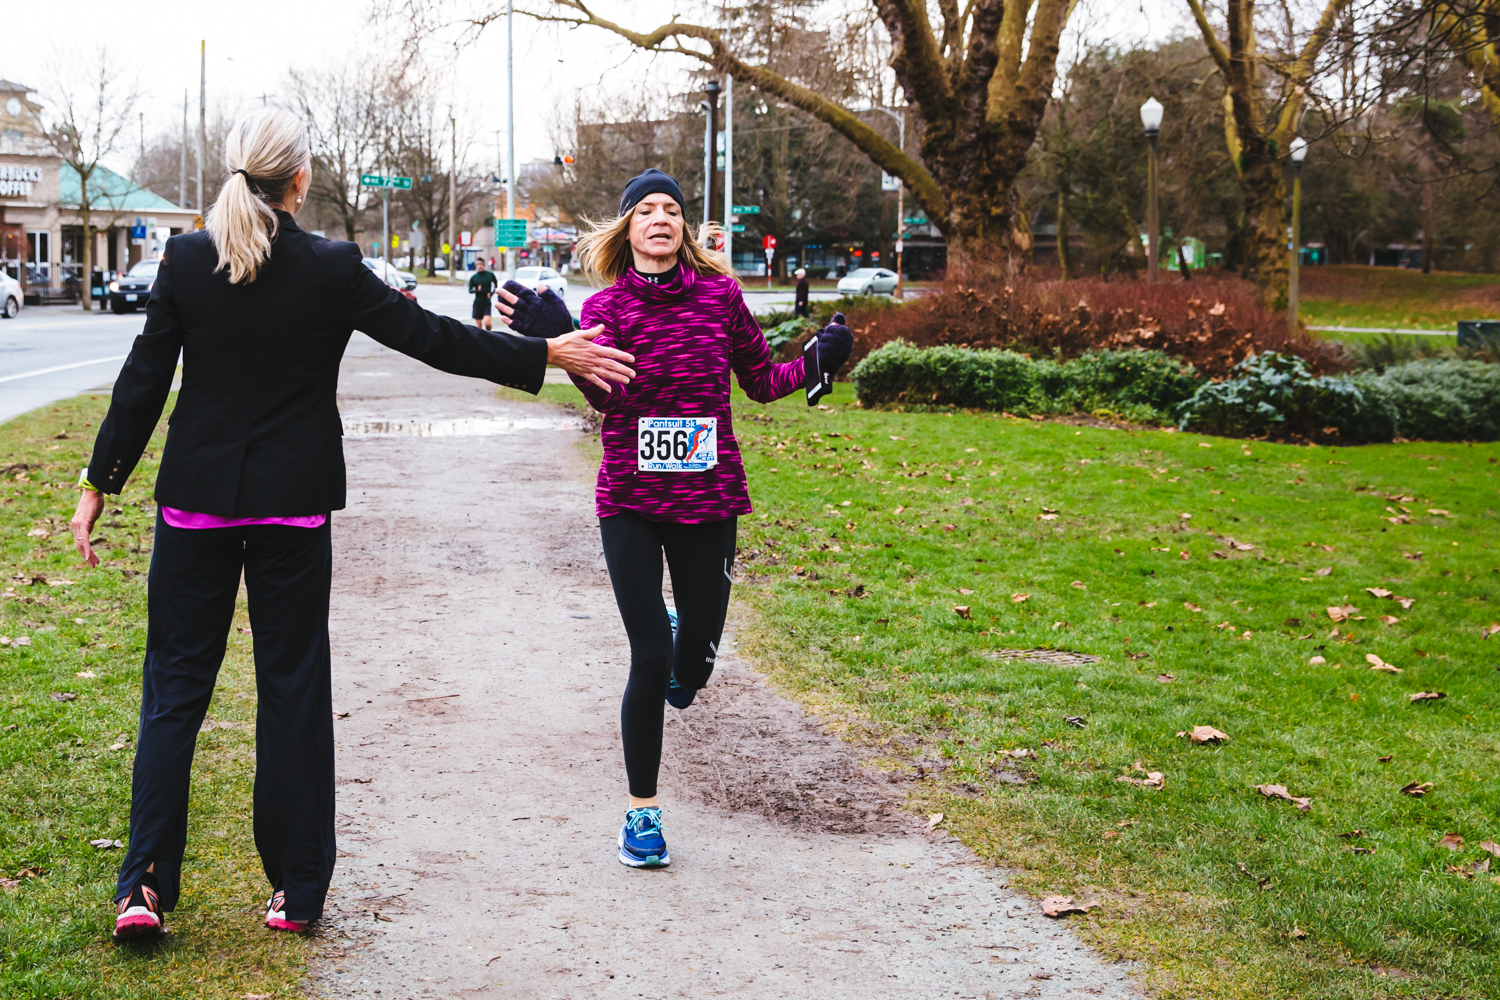 You get a pantsuit, you get a pantsuit! Who doesn't look good in a pantsuit? NOBODY THAT'S WHO! This was proven today (January 20, 2018) as fully uniformed athletes braved the weather and donned their suits to run Green Lake in Seattle. The primary purpose of the event is for the 'unification of the Pantsuit community and to continue to strive for change.' We can get behind that! (Image: Sunita Martini / Seattle Refined)